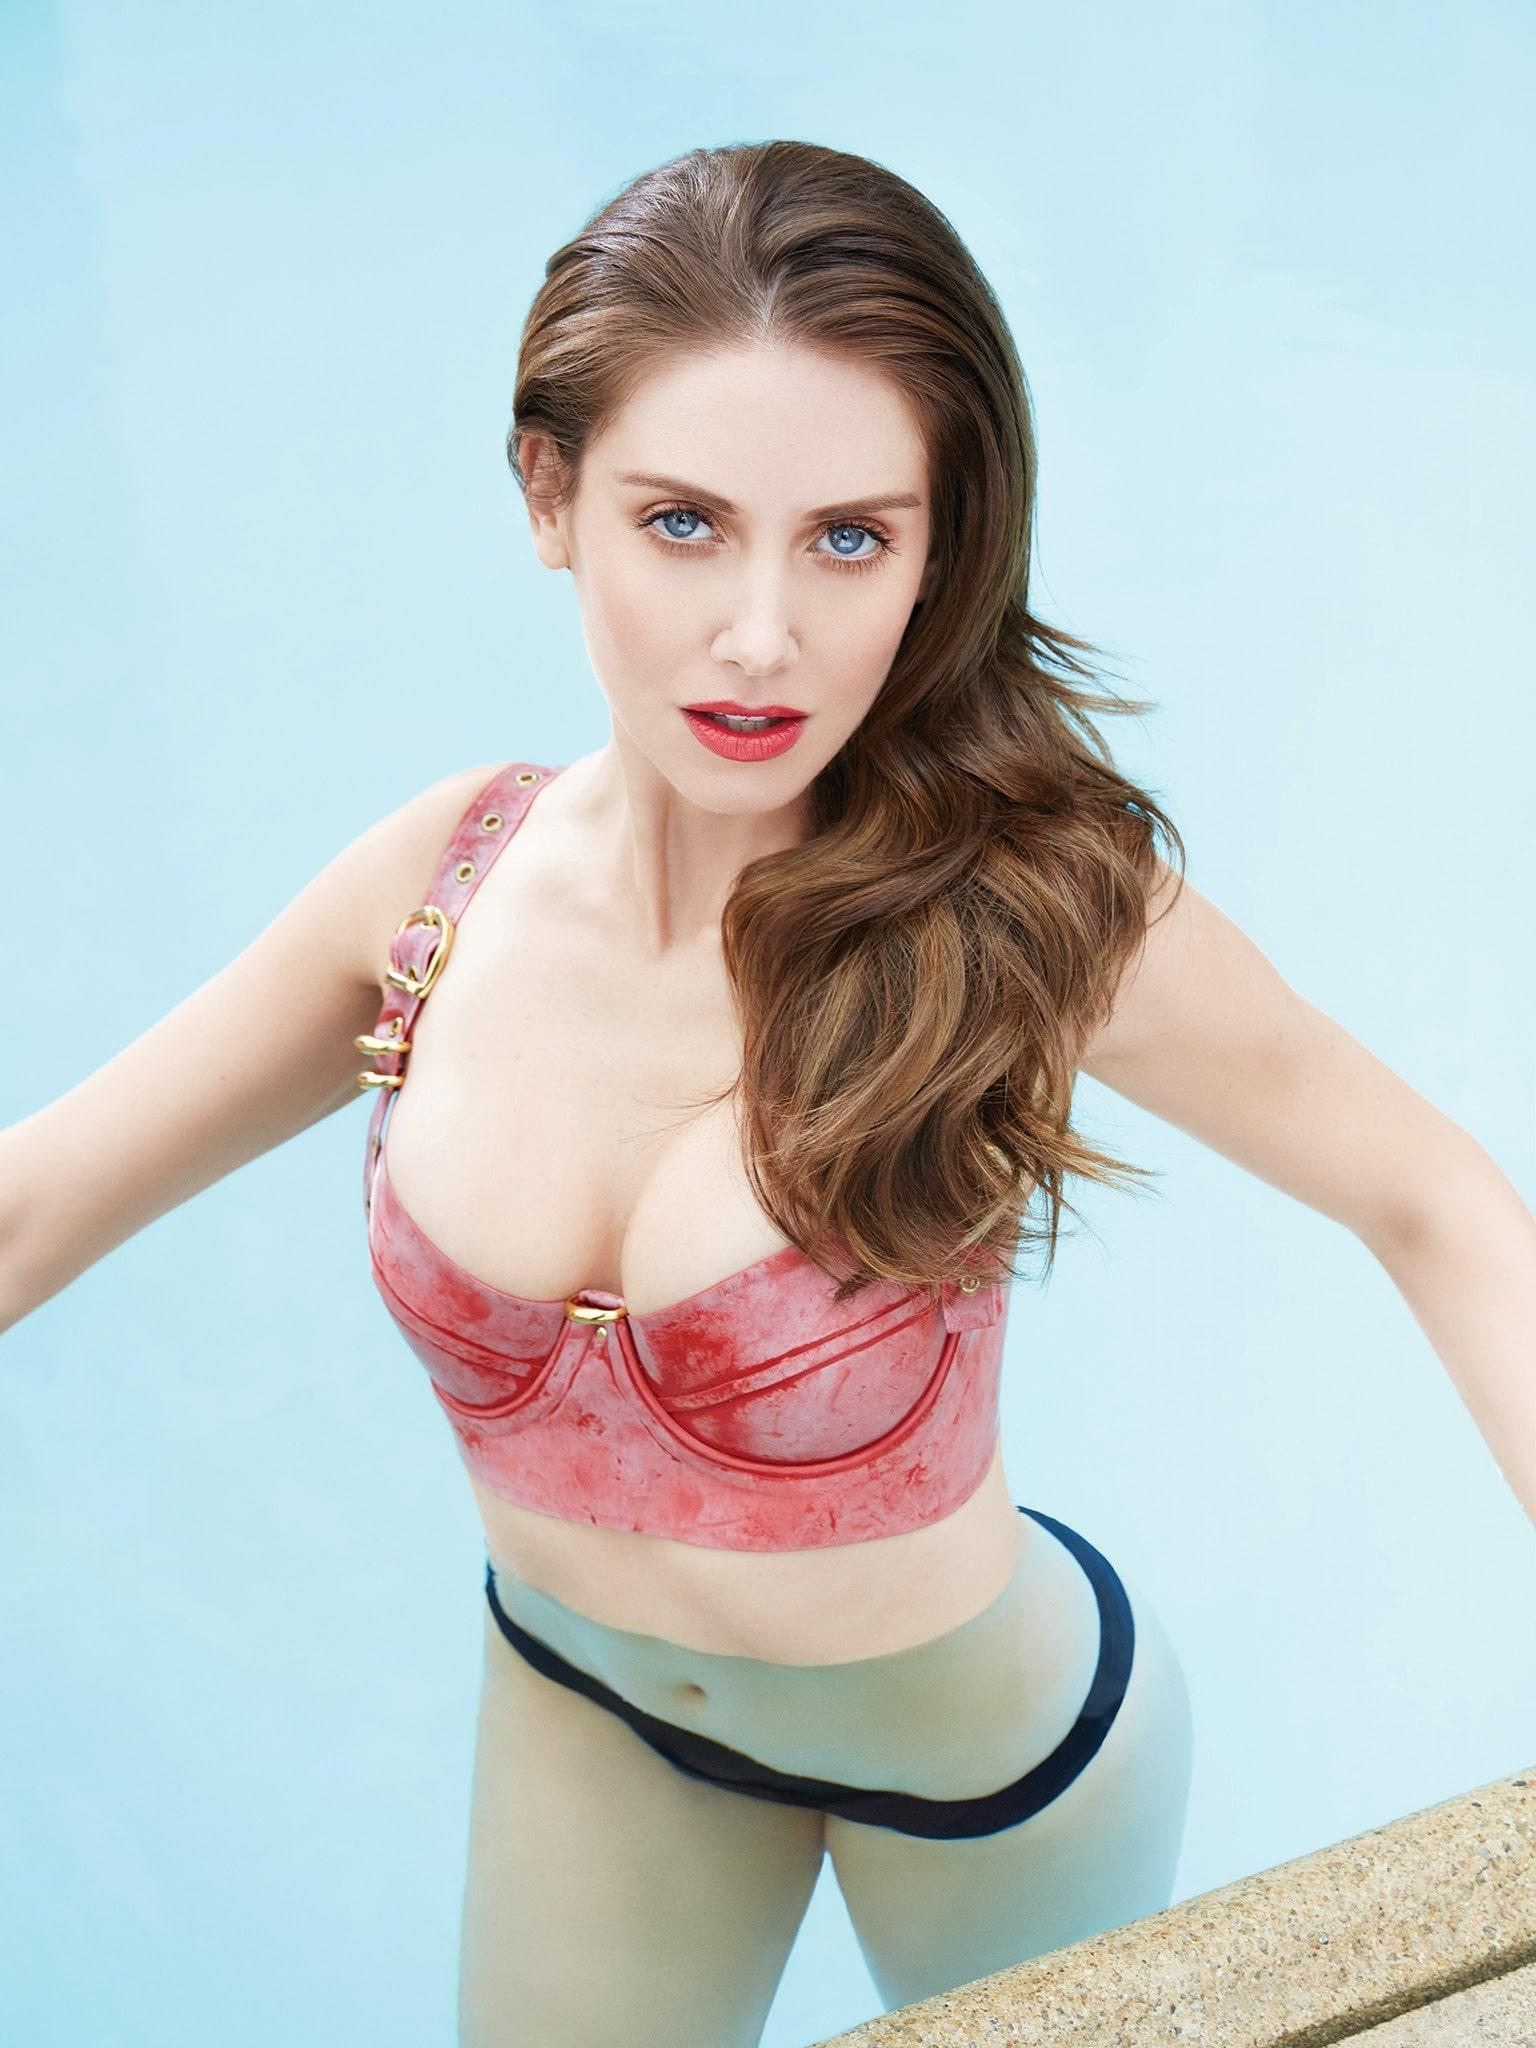 Alison Brie sexy cleavage pics